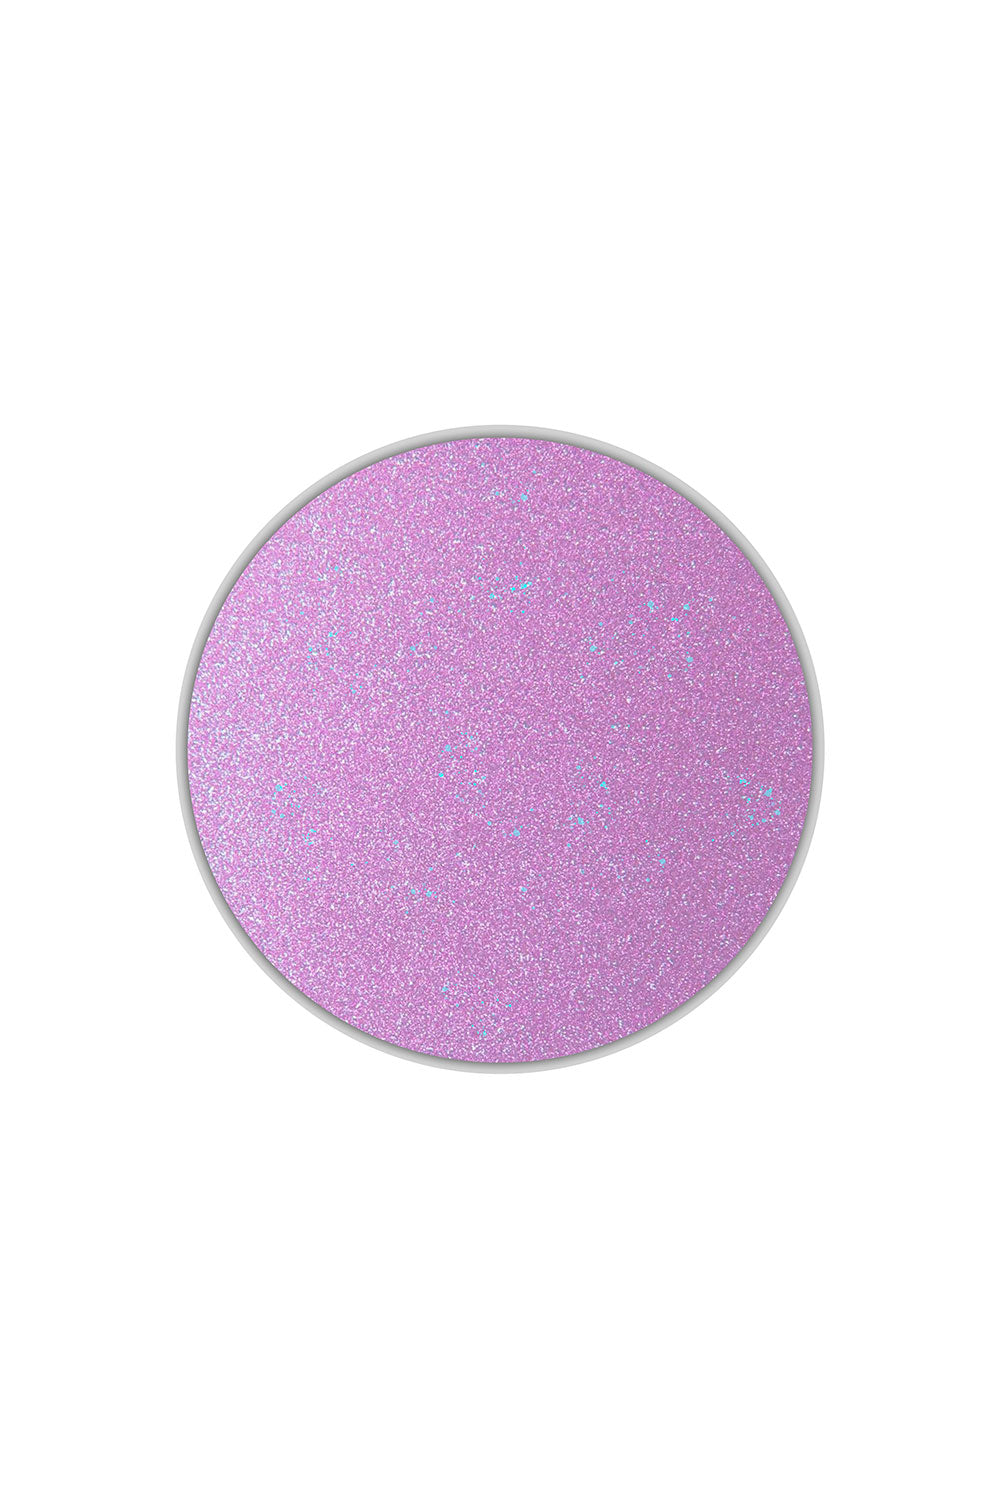 Type 4 Eyeshadow Pan - Unicorn